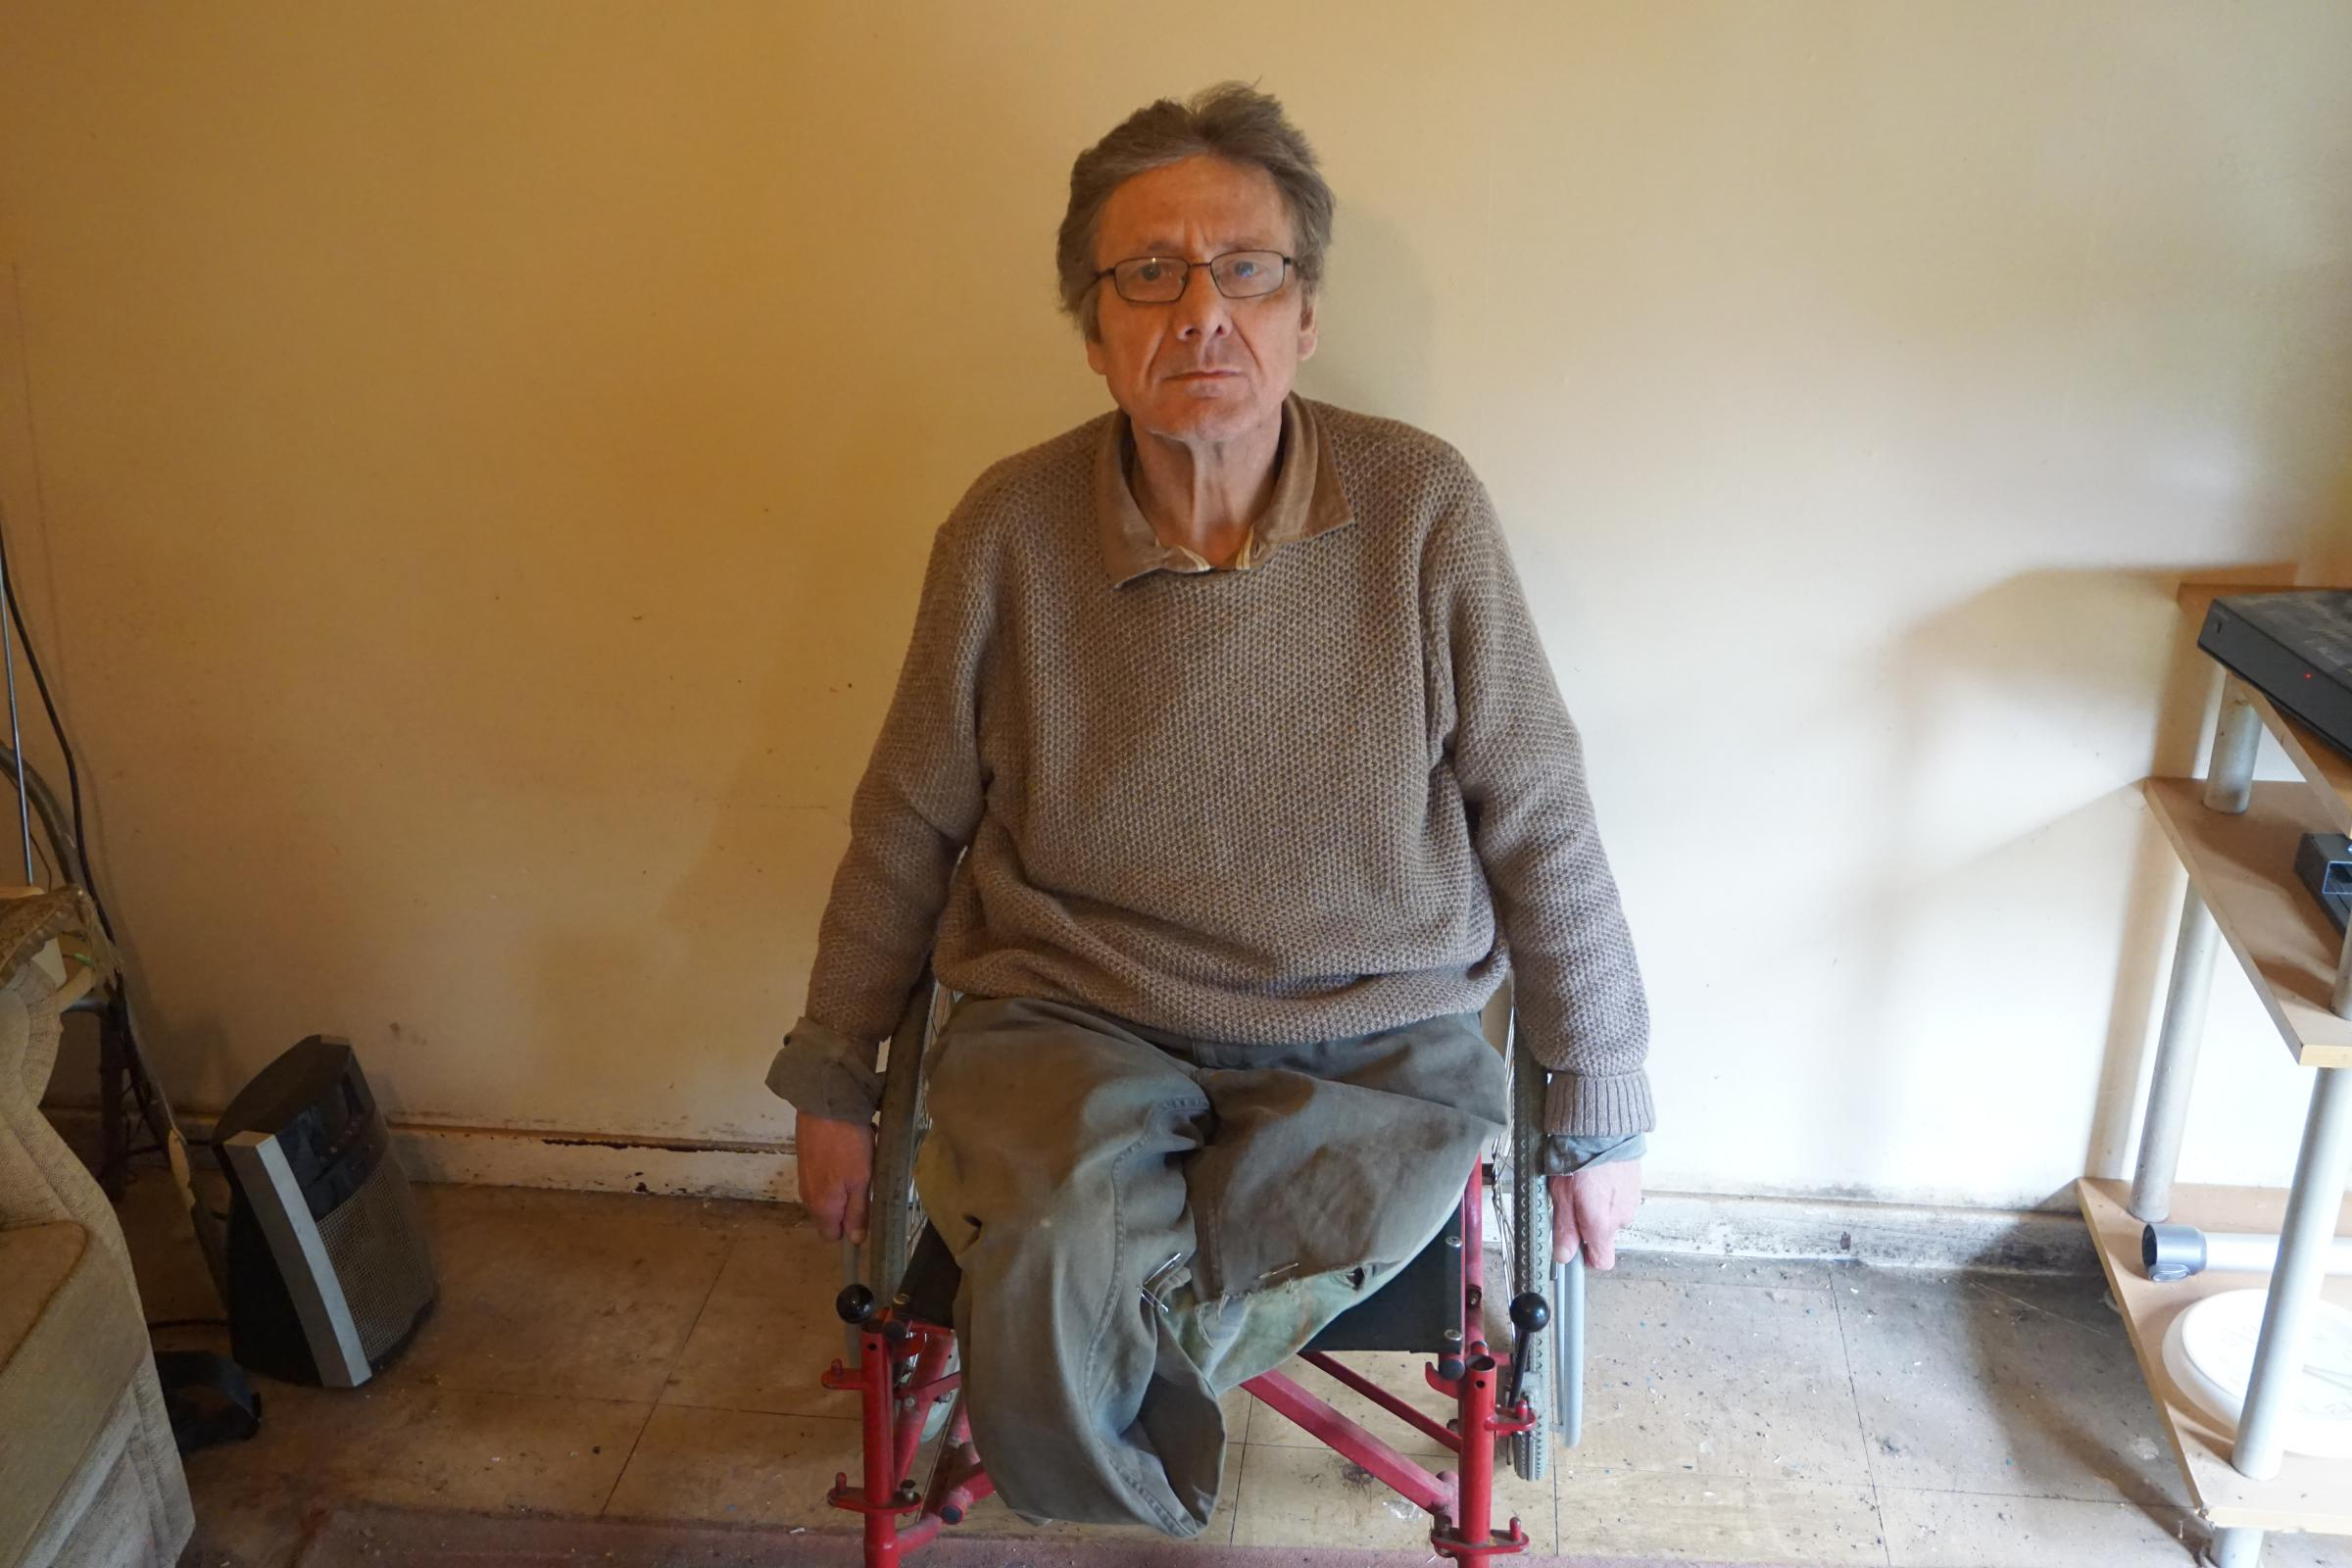 Leonard Andrews, 64, has to work without legs